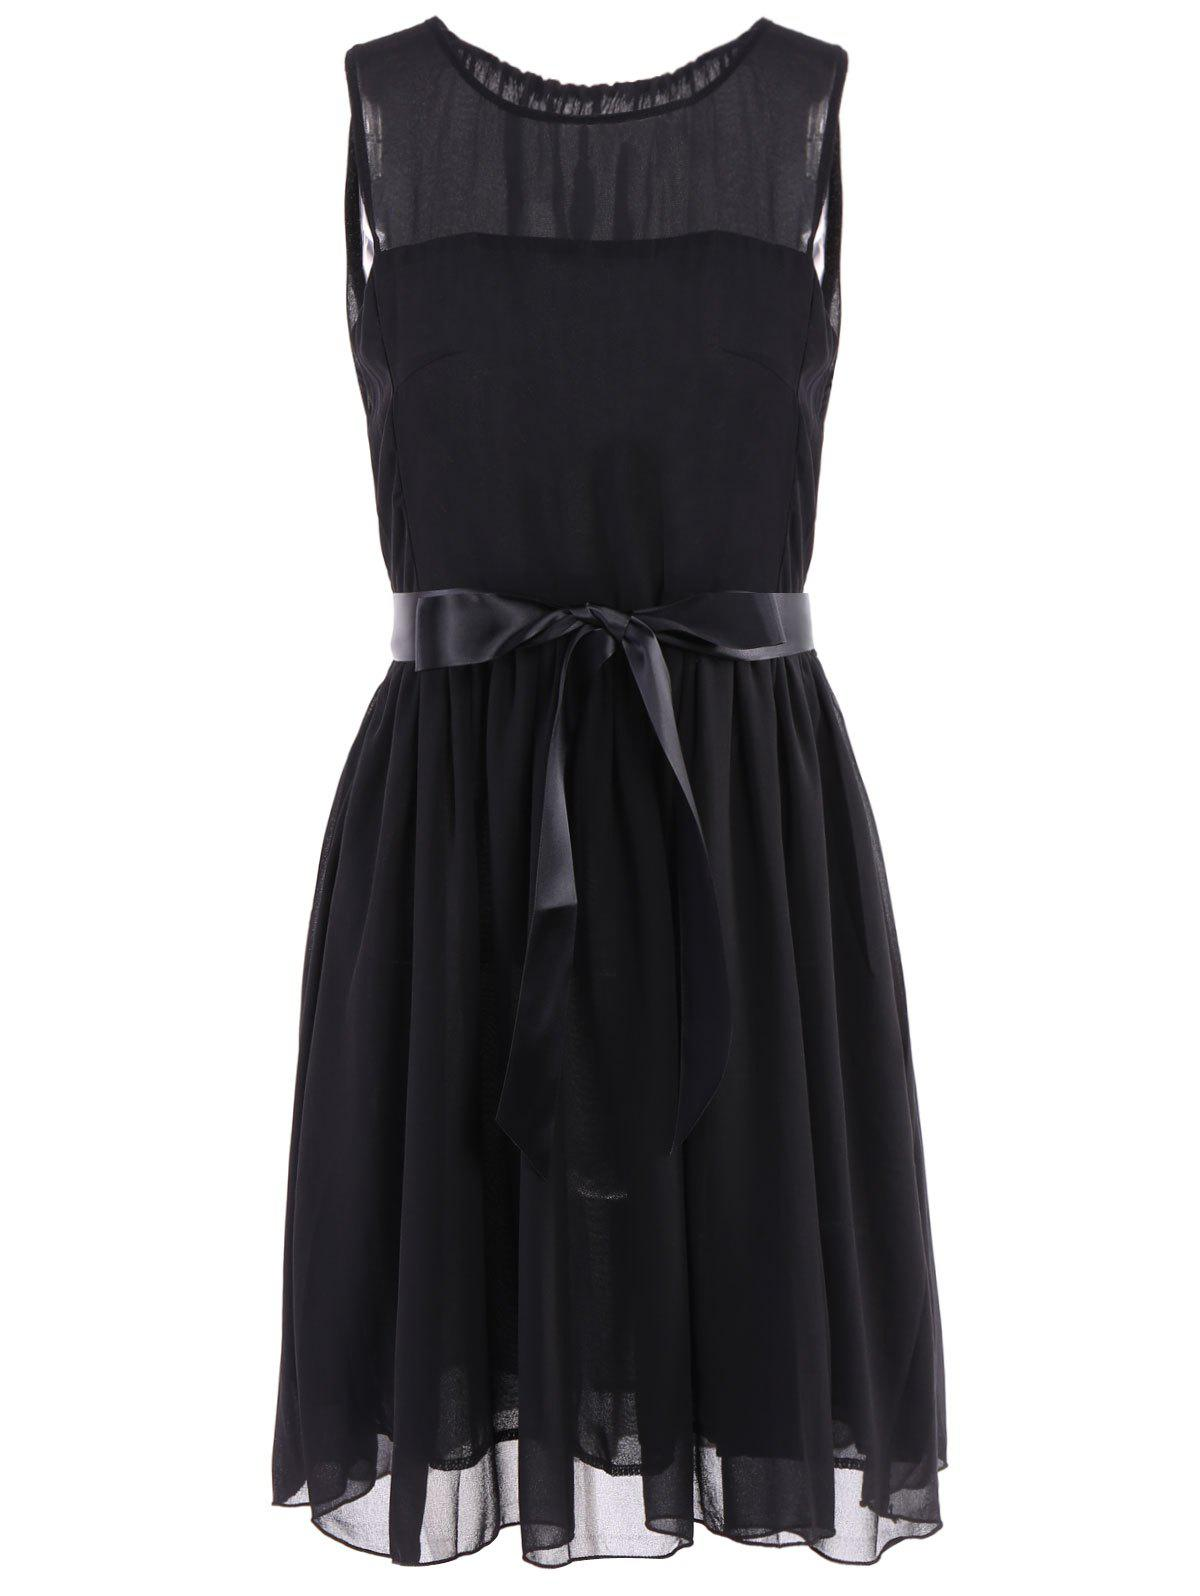 Elegant Style Round Neck Sleeveless Chiffon Women's Dress - BLACK L